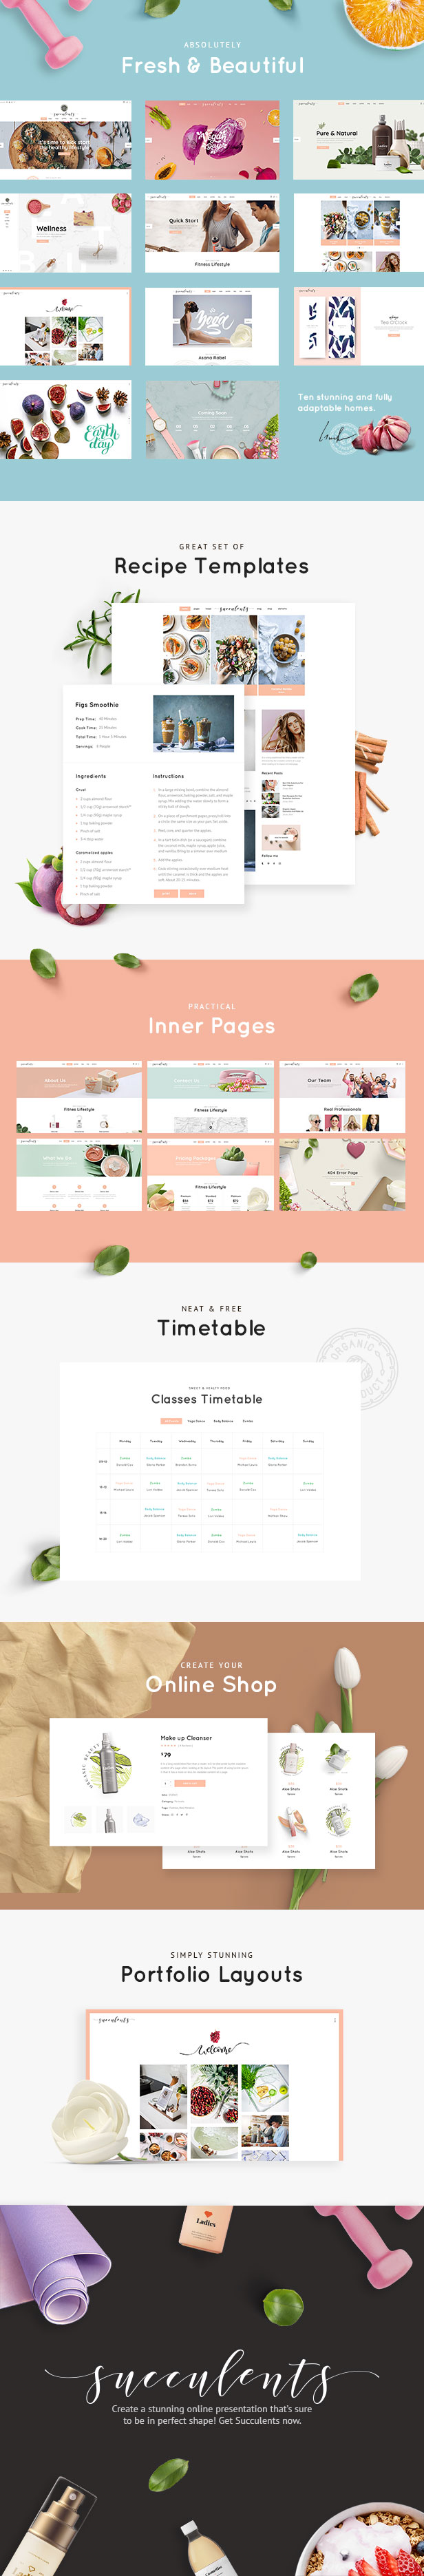 Succulents - Healthy Lifestyle and Wellness Theme - 1